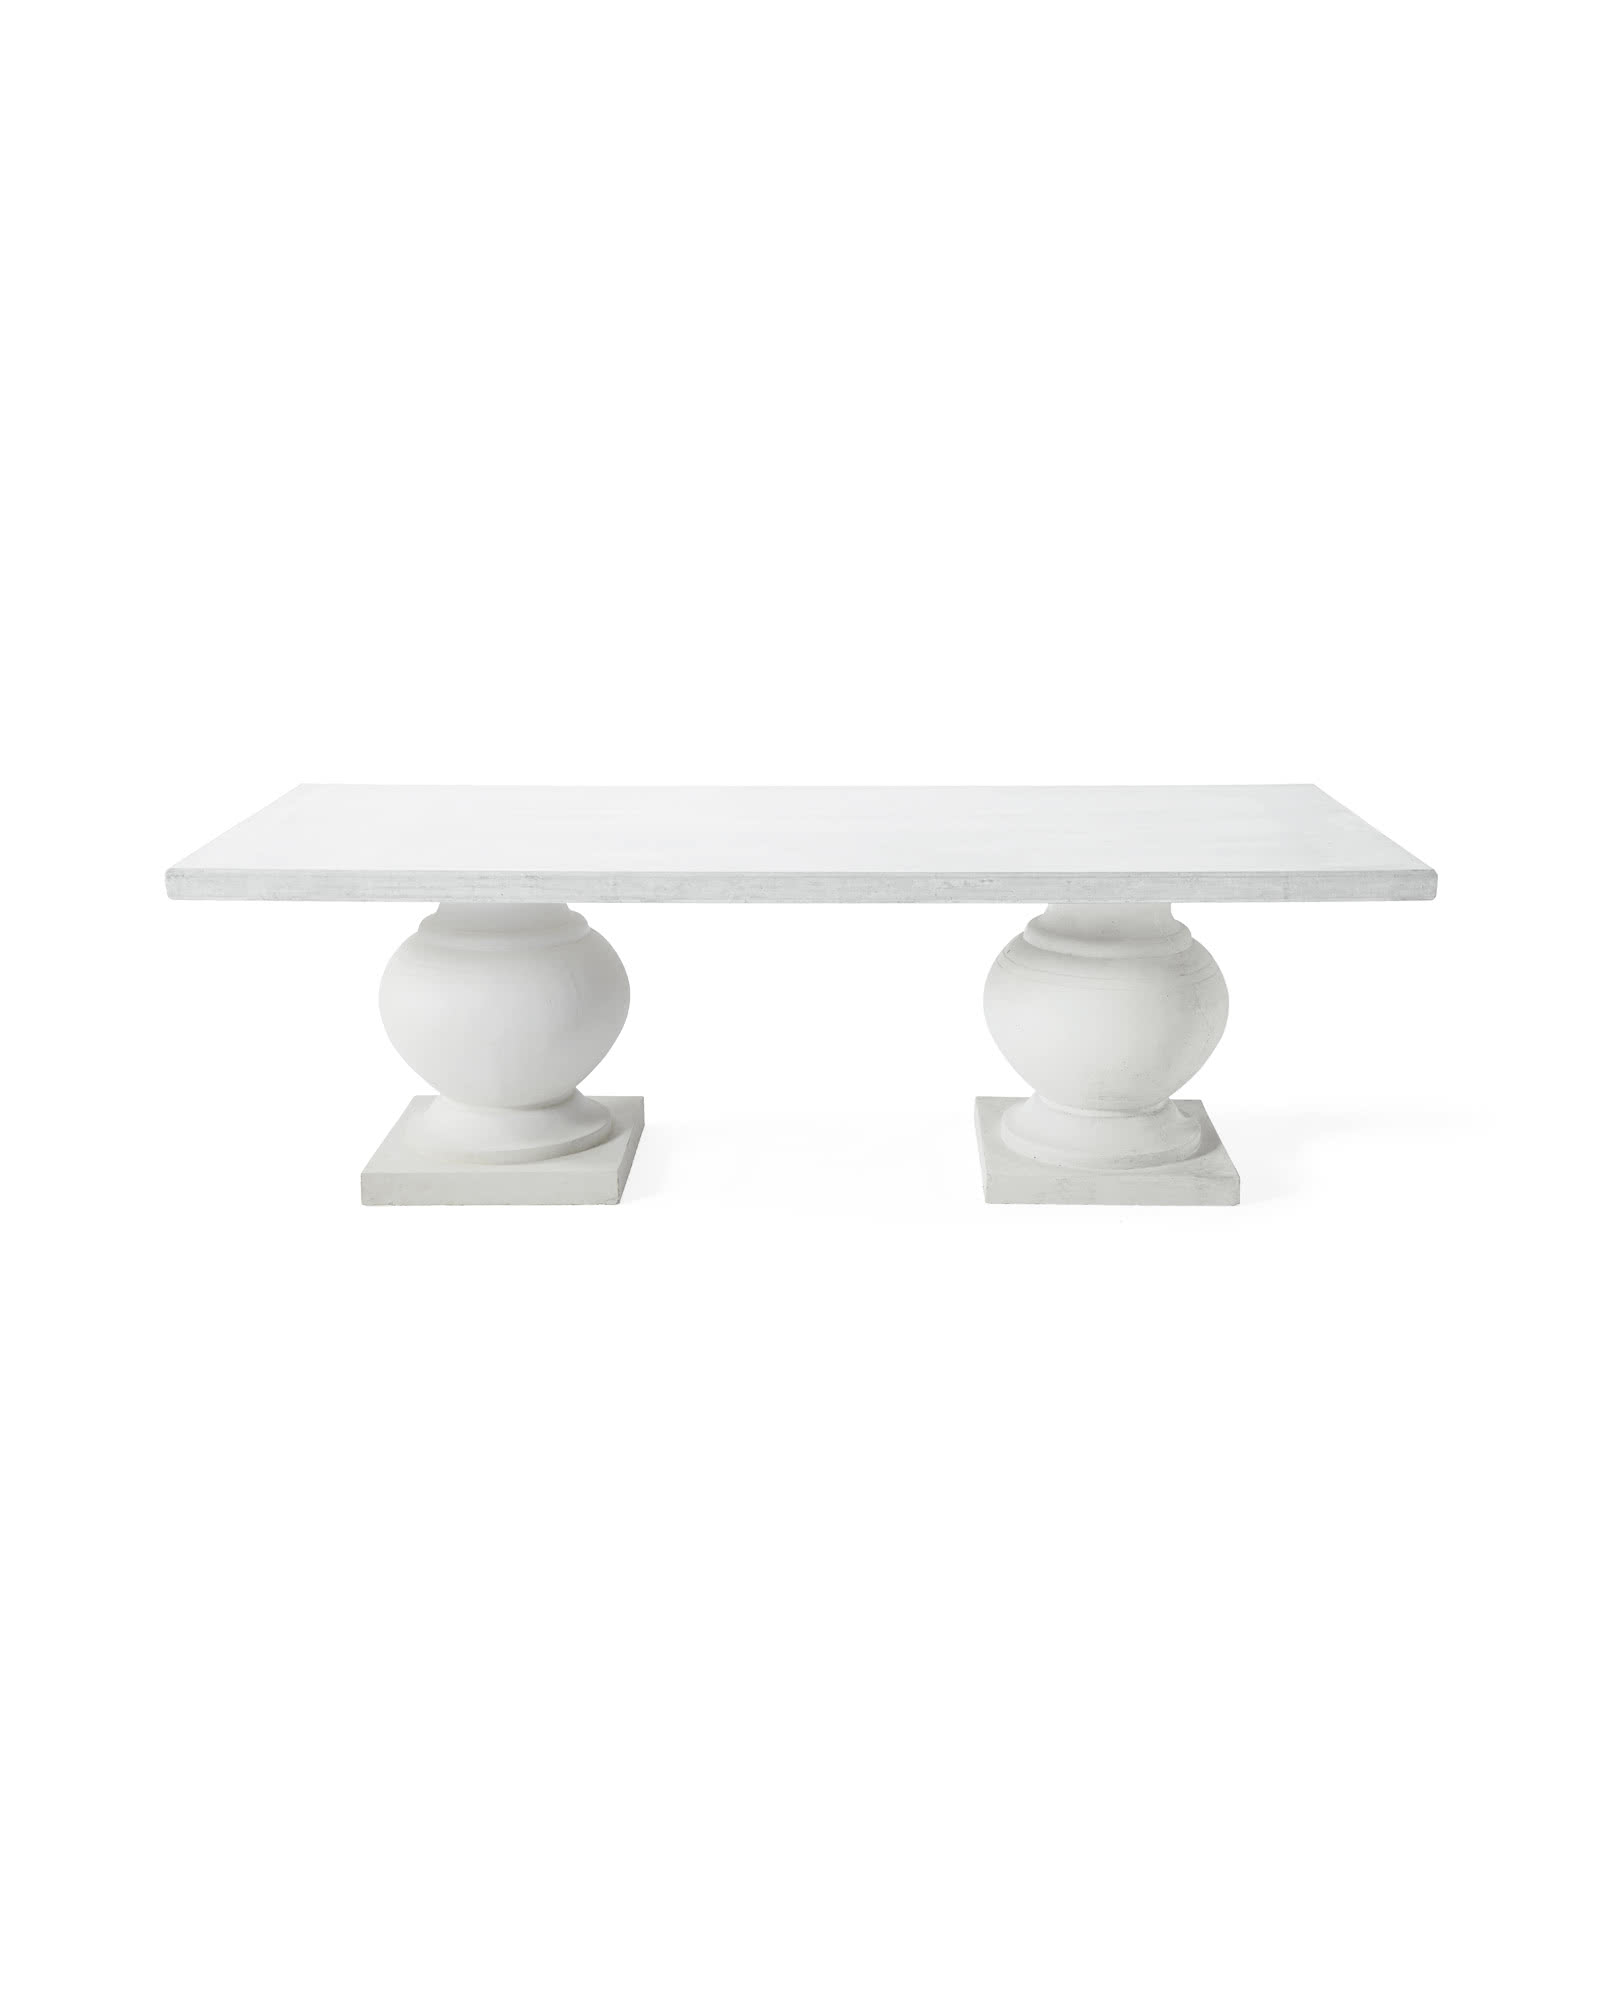 Terrace Dining Table, White/White